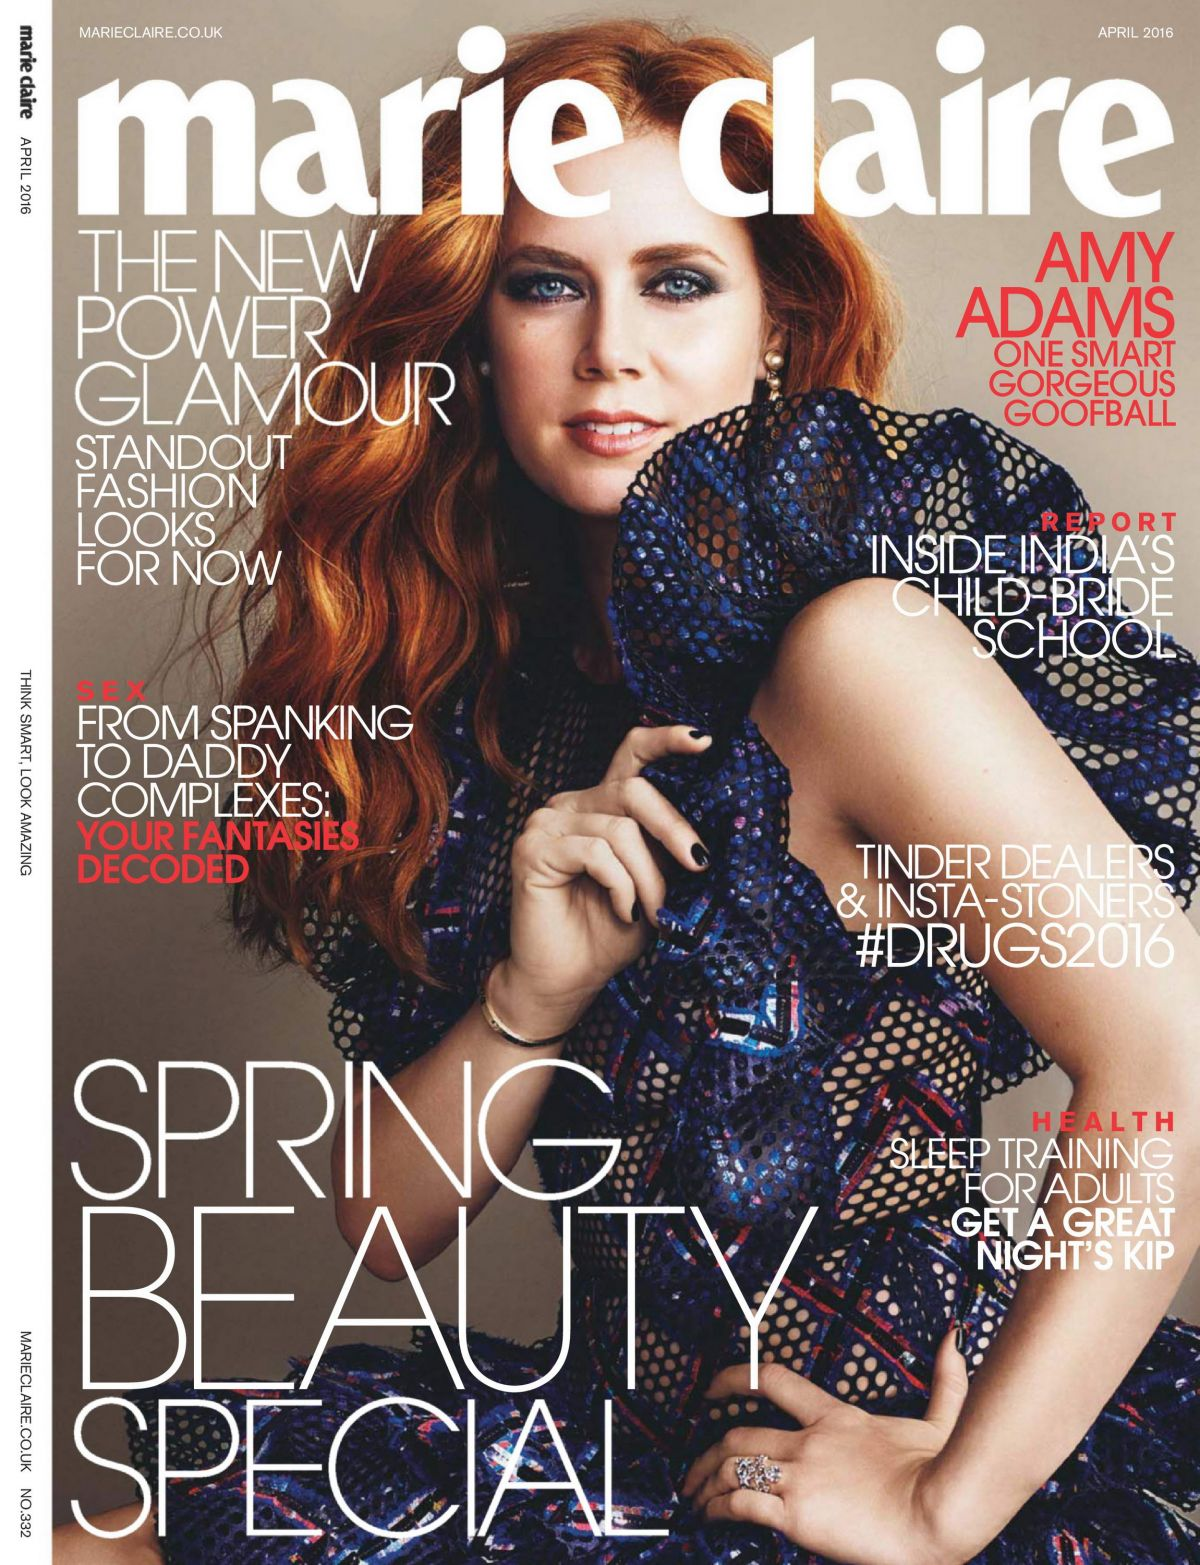 AMY ADAMS in Marie Claire Magazine, UK April 2016 Issue